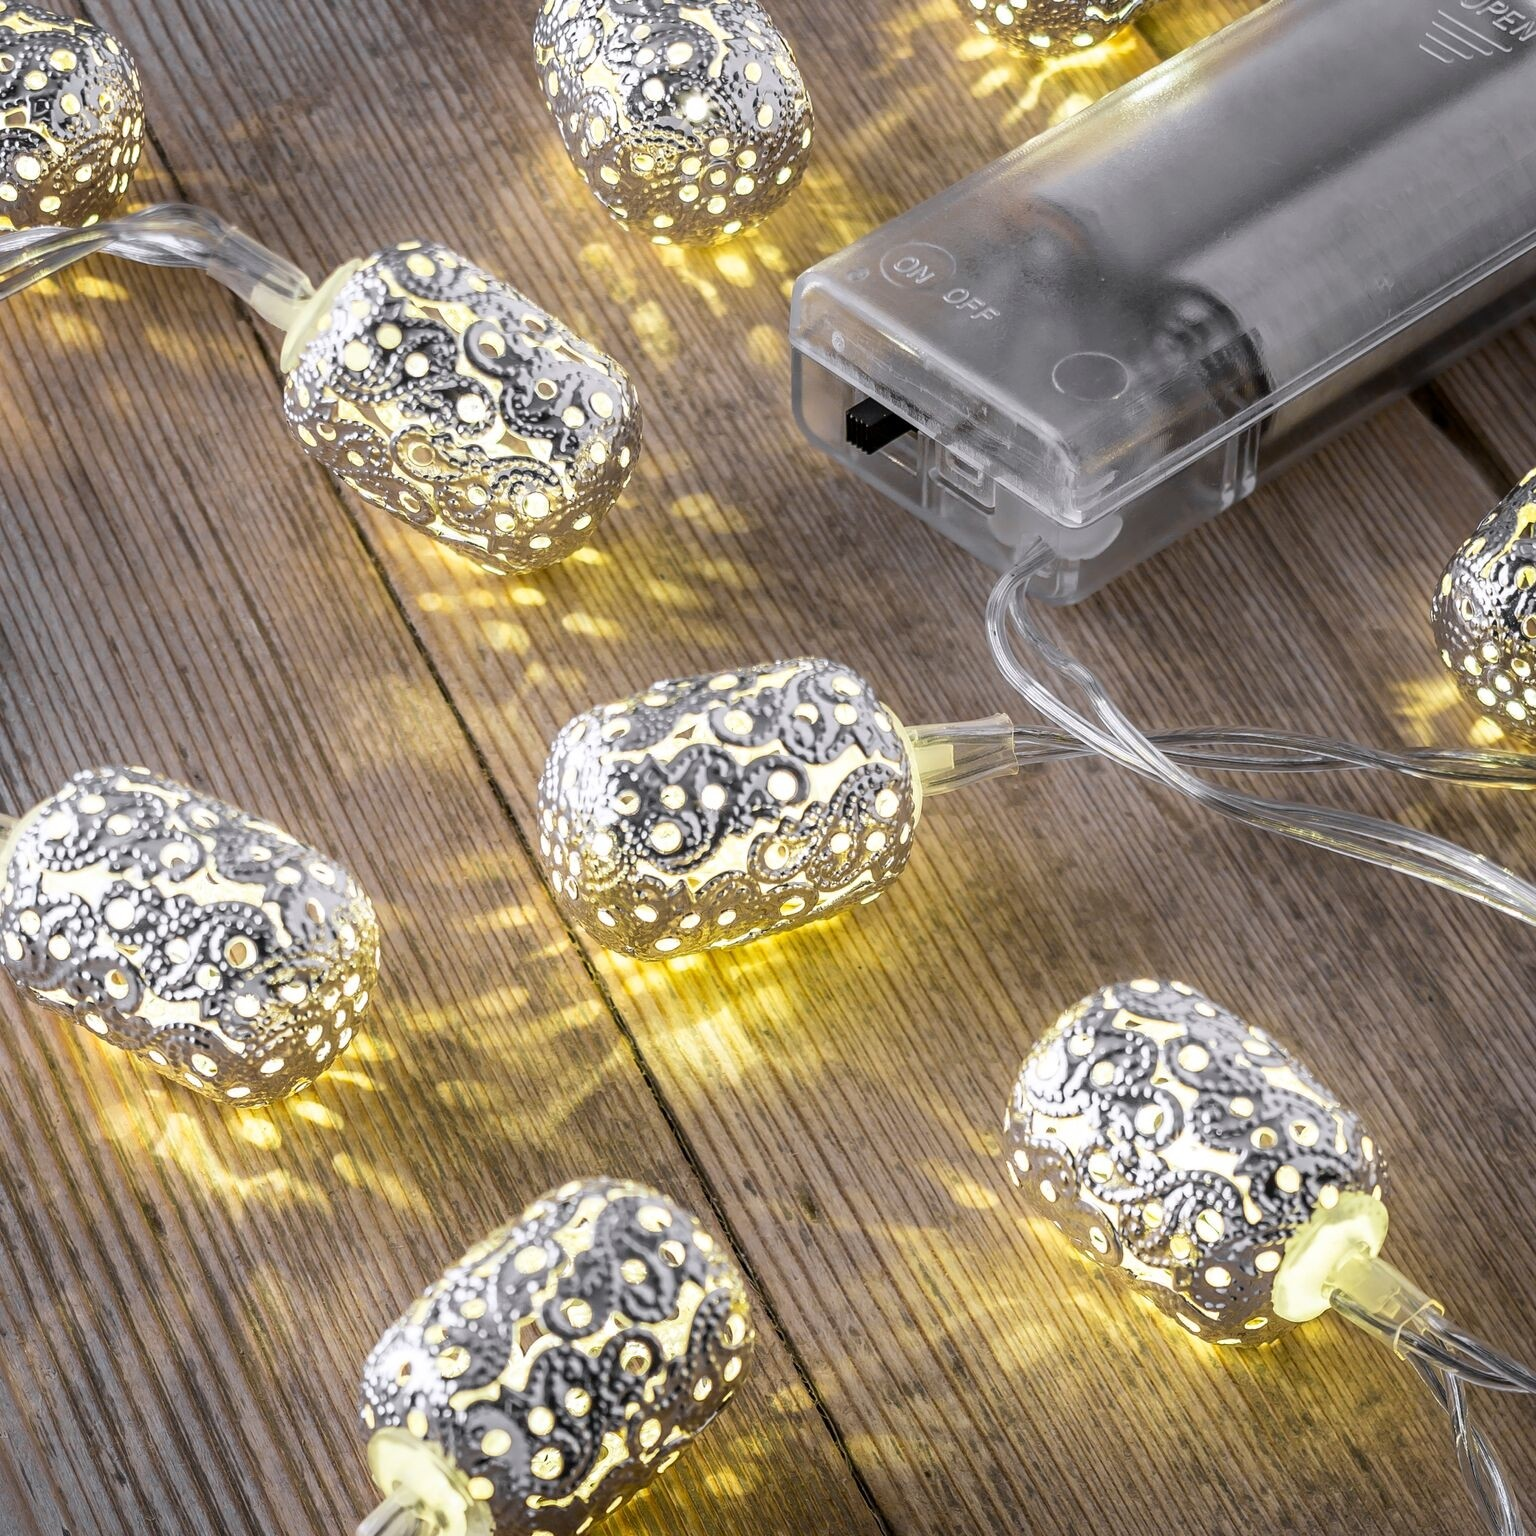 Battery String Lights Indoor : Set of 12 Battery Operated 2.5m Indoor String Lights - Ellipse - Auraglow LED Lighting